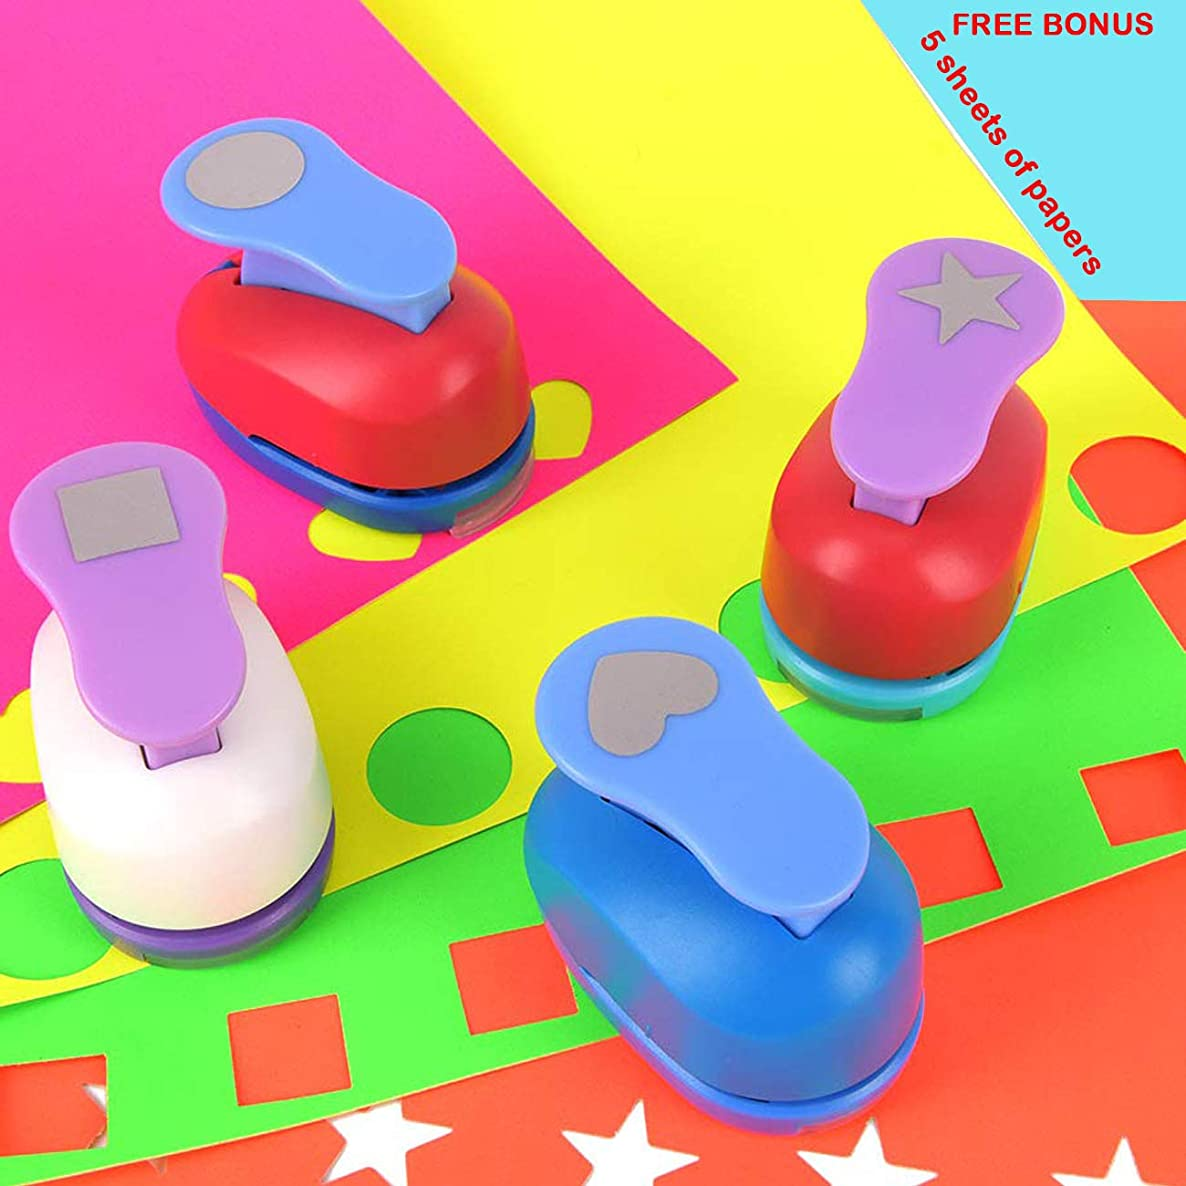 Buytra Scrapbook Paper Punchers Hole Punch 1 Inch - Shape Punches for Kids Paper Crafts, Card Making, Scrapbooking - 4 Shapes Including Circle, Star, Heart, Square Punch, Color May Vary